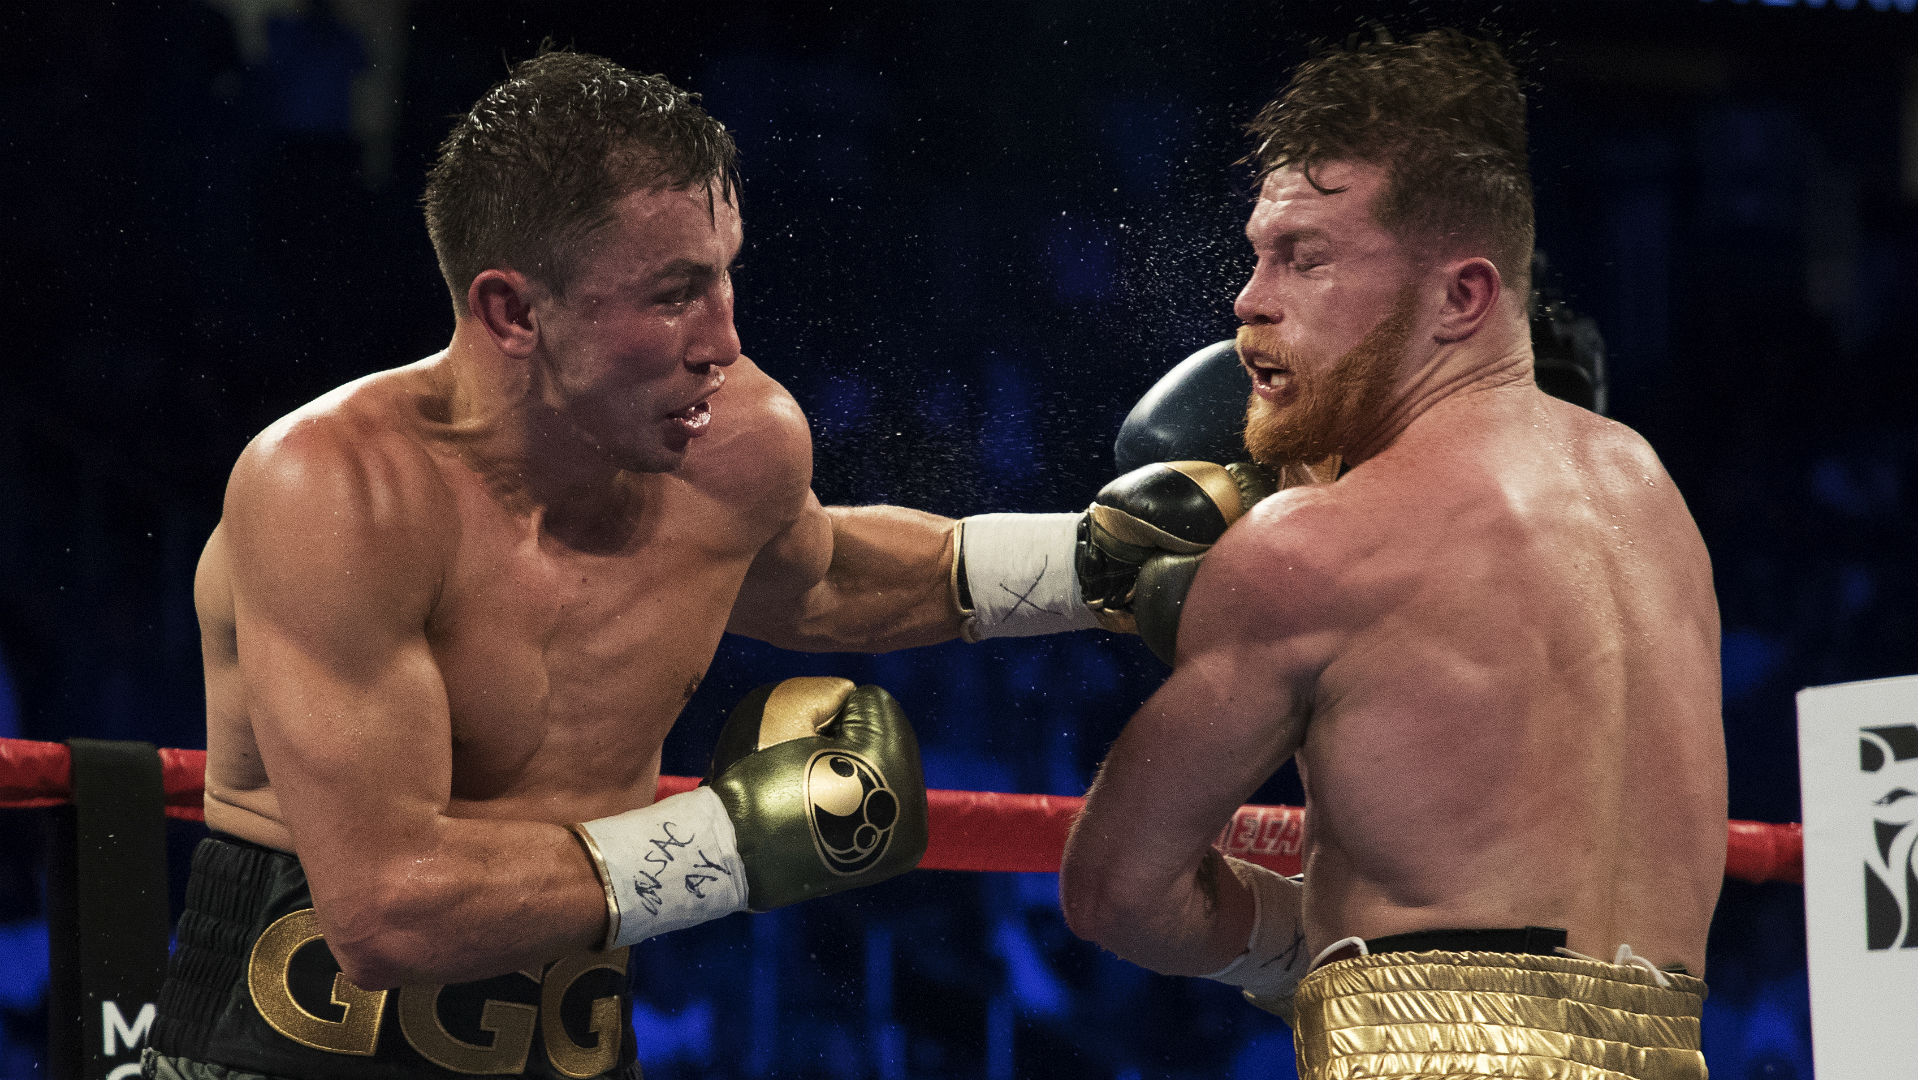 Canelo open to another rematch after defeating Golovkin